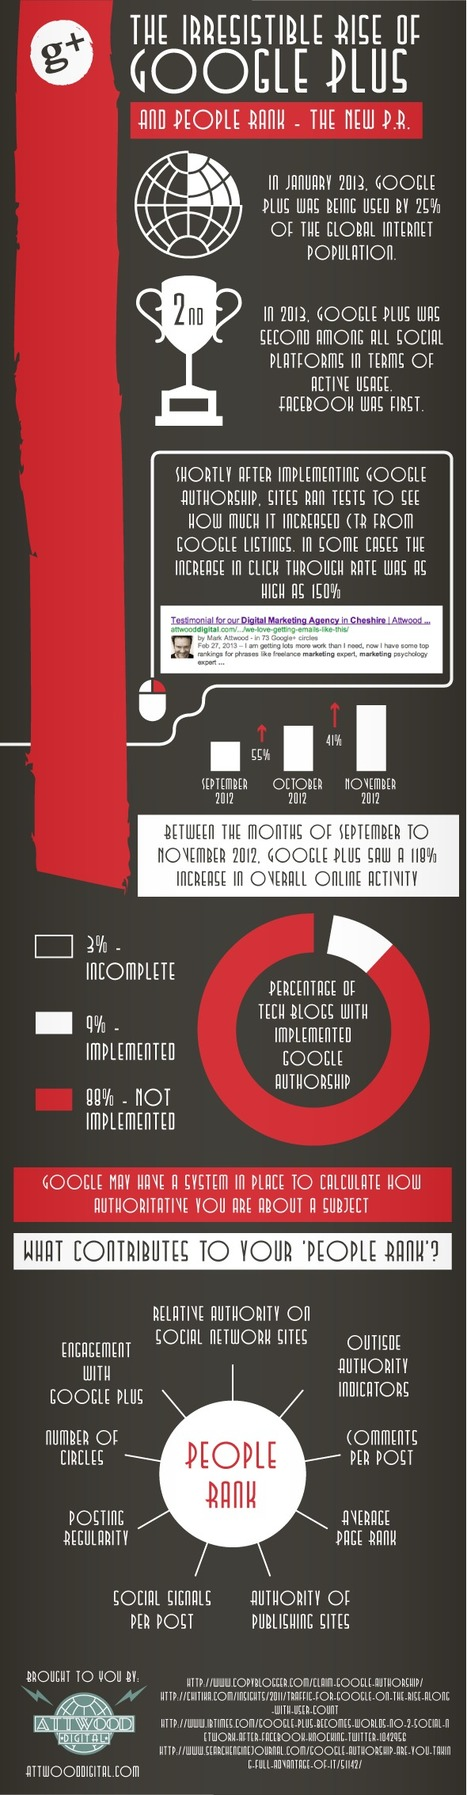 The Irresistible Rise Of Google Plus (Infographic) | www.Facebook.com.Retro.Social.Media | Scoop.it